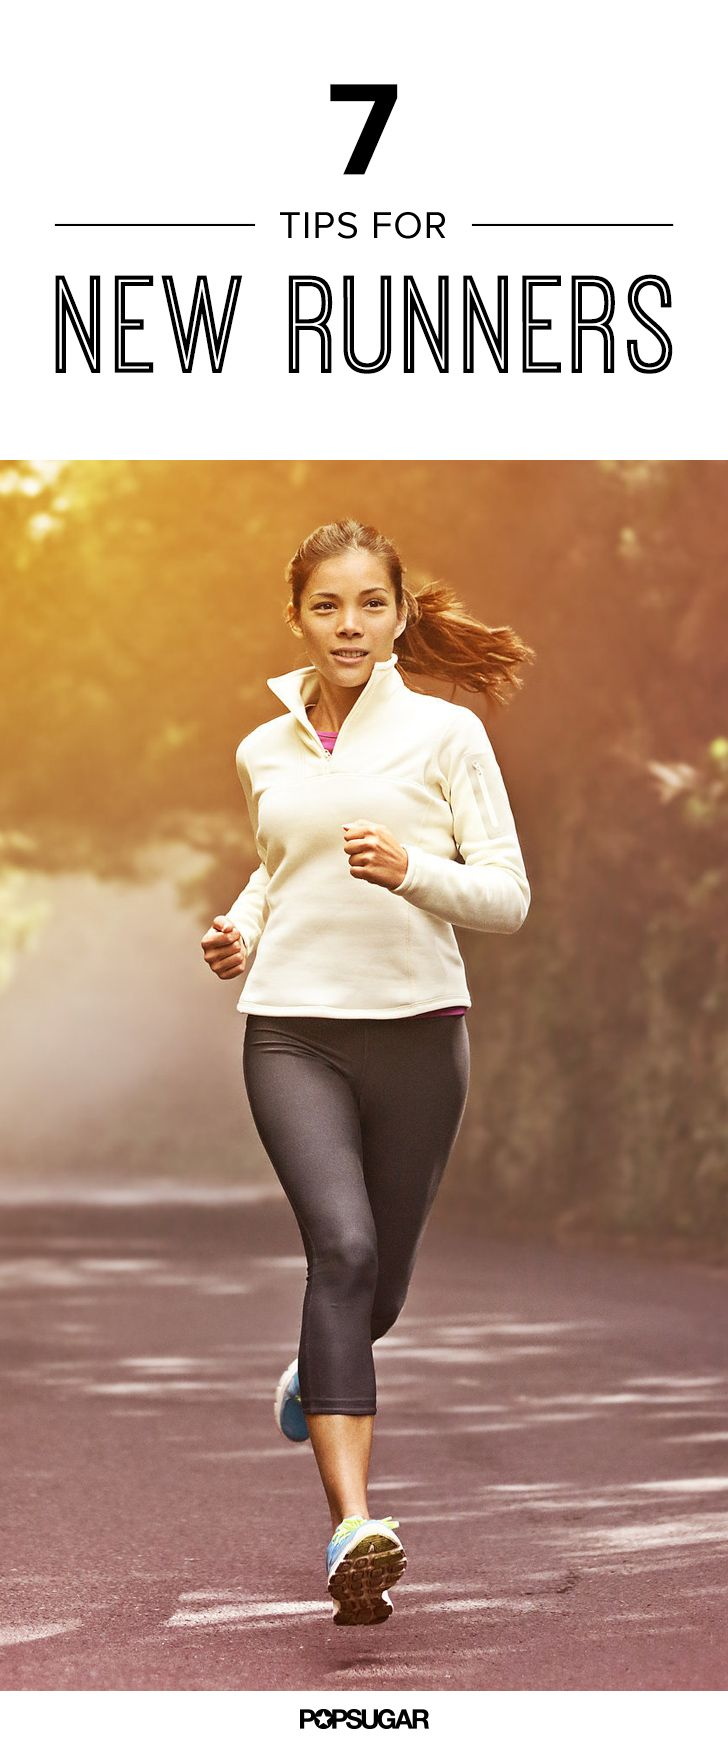 7 Tips for New Runners